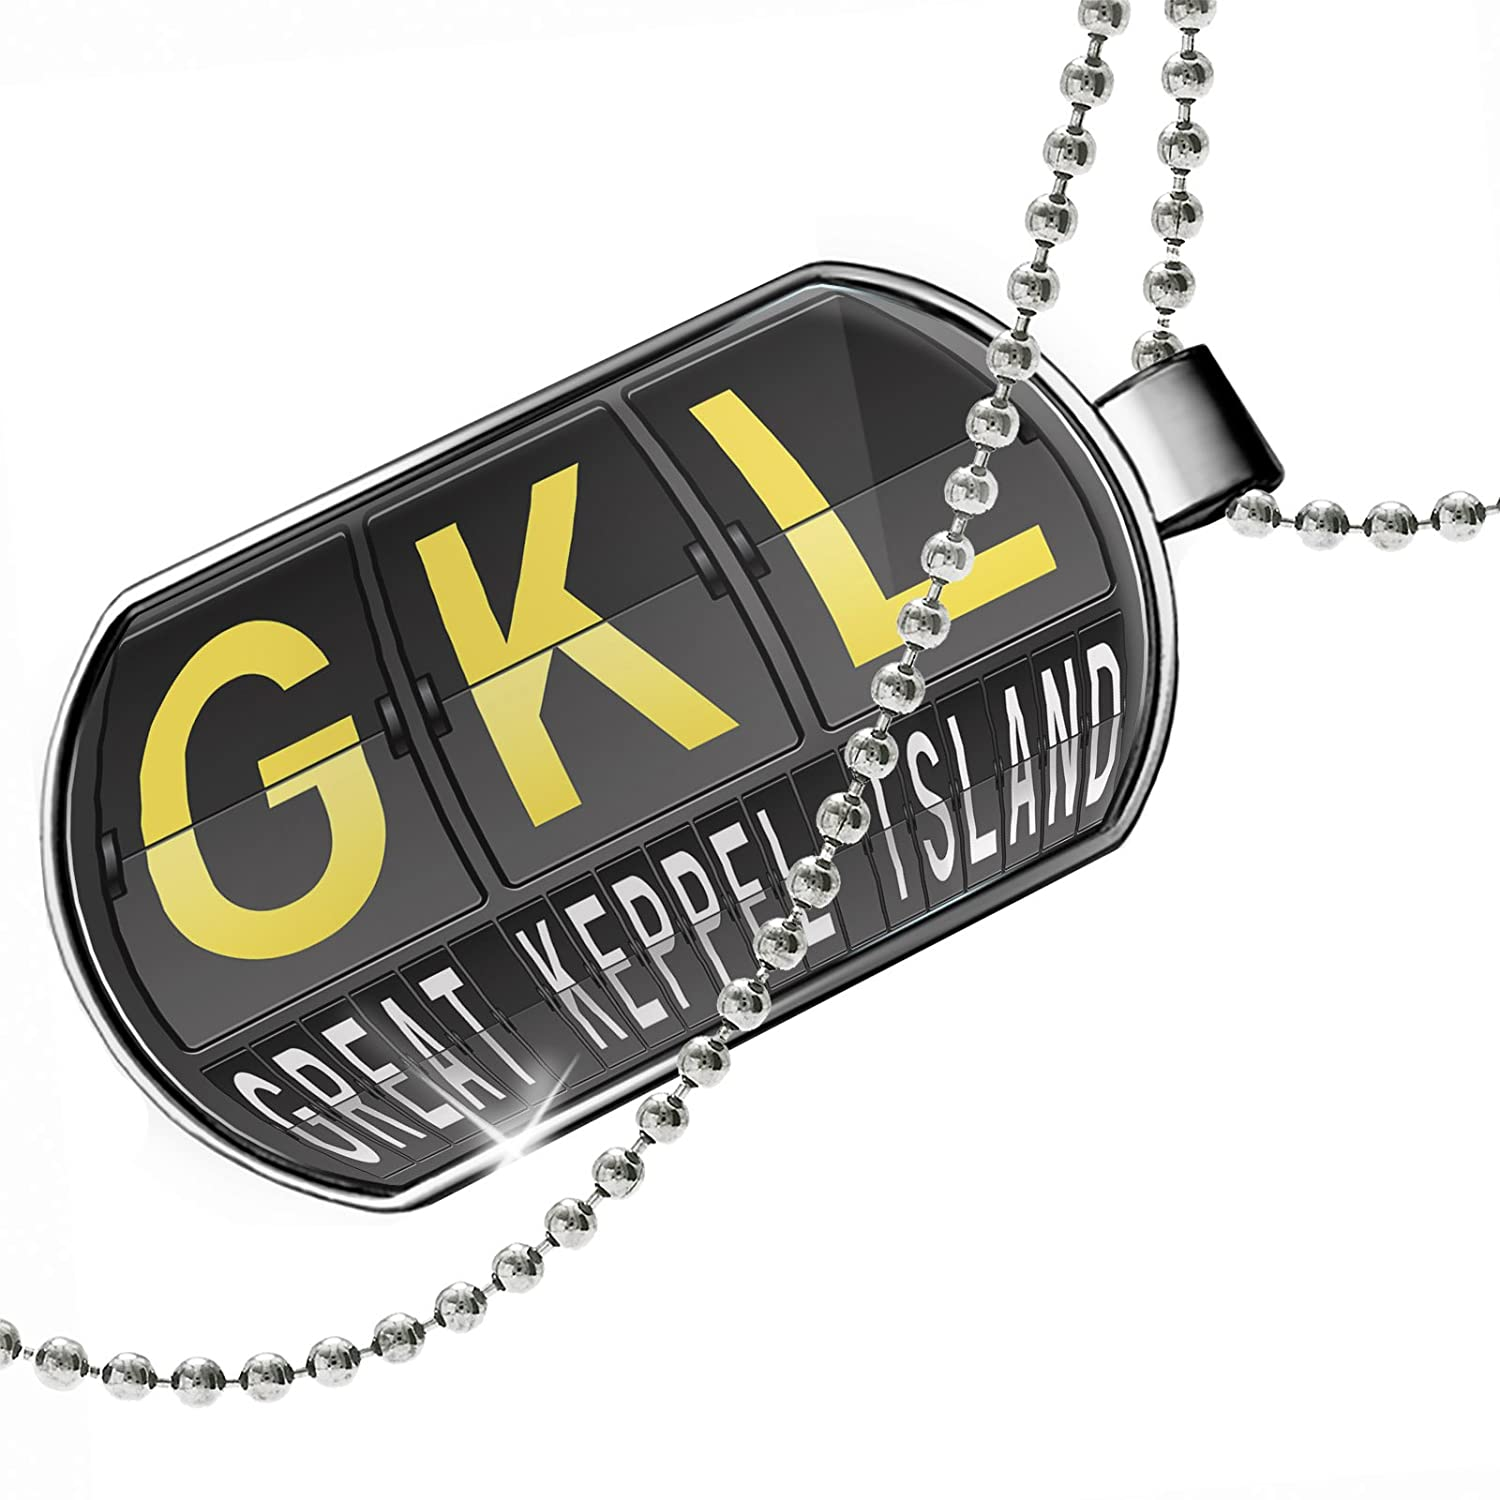 NEONBLOND Personalized Name Engraved GKL Airport Code for Great Keppel Island Dogtag Necklace